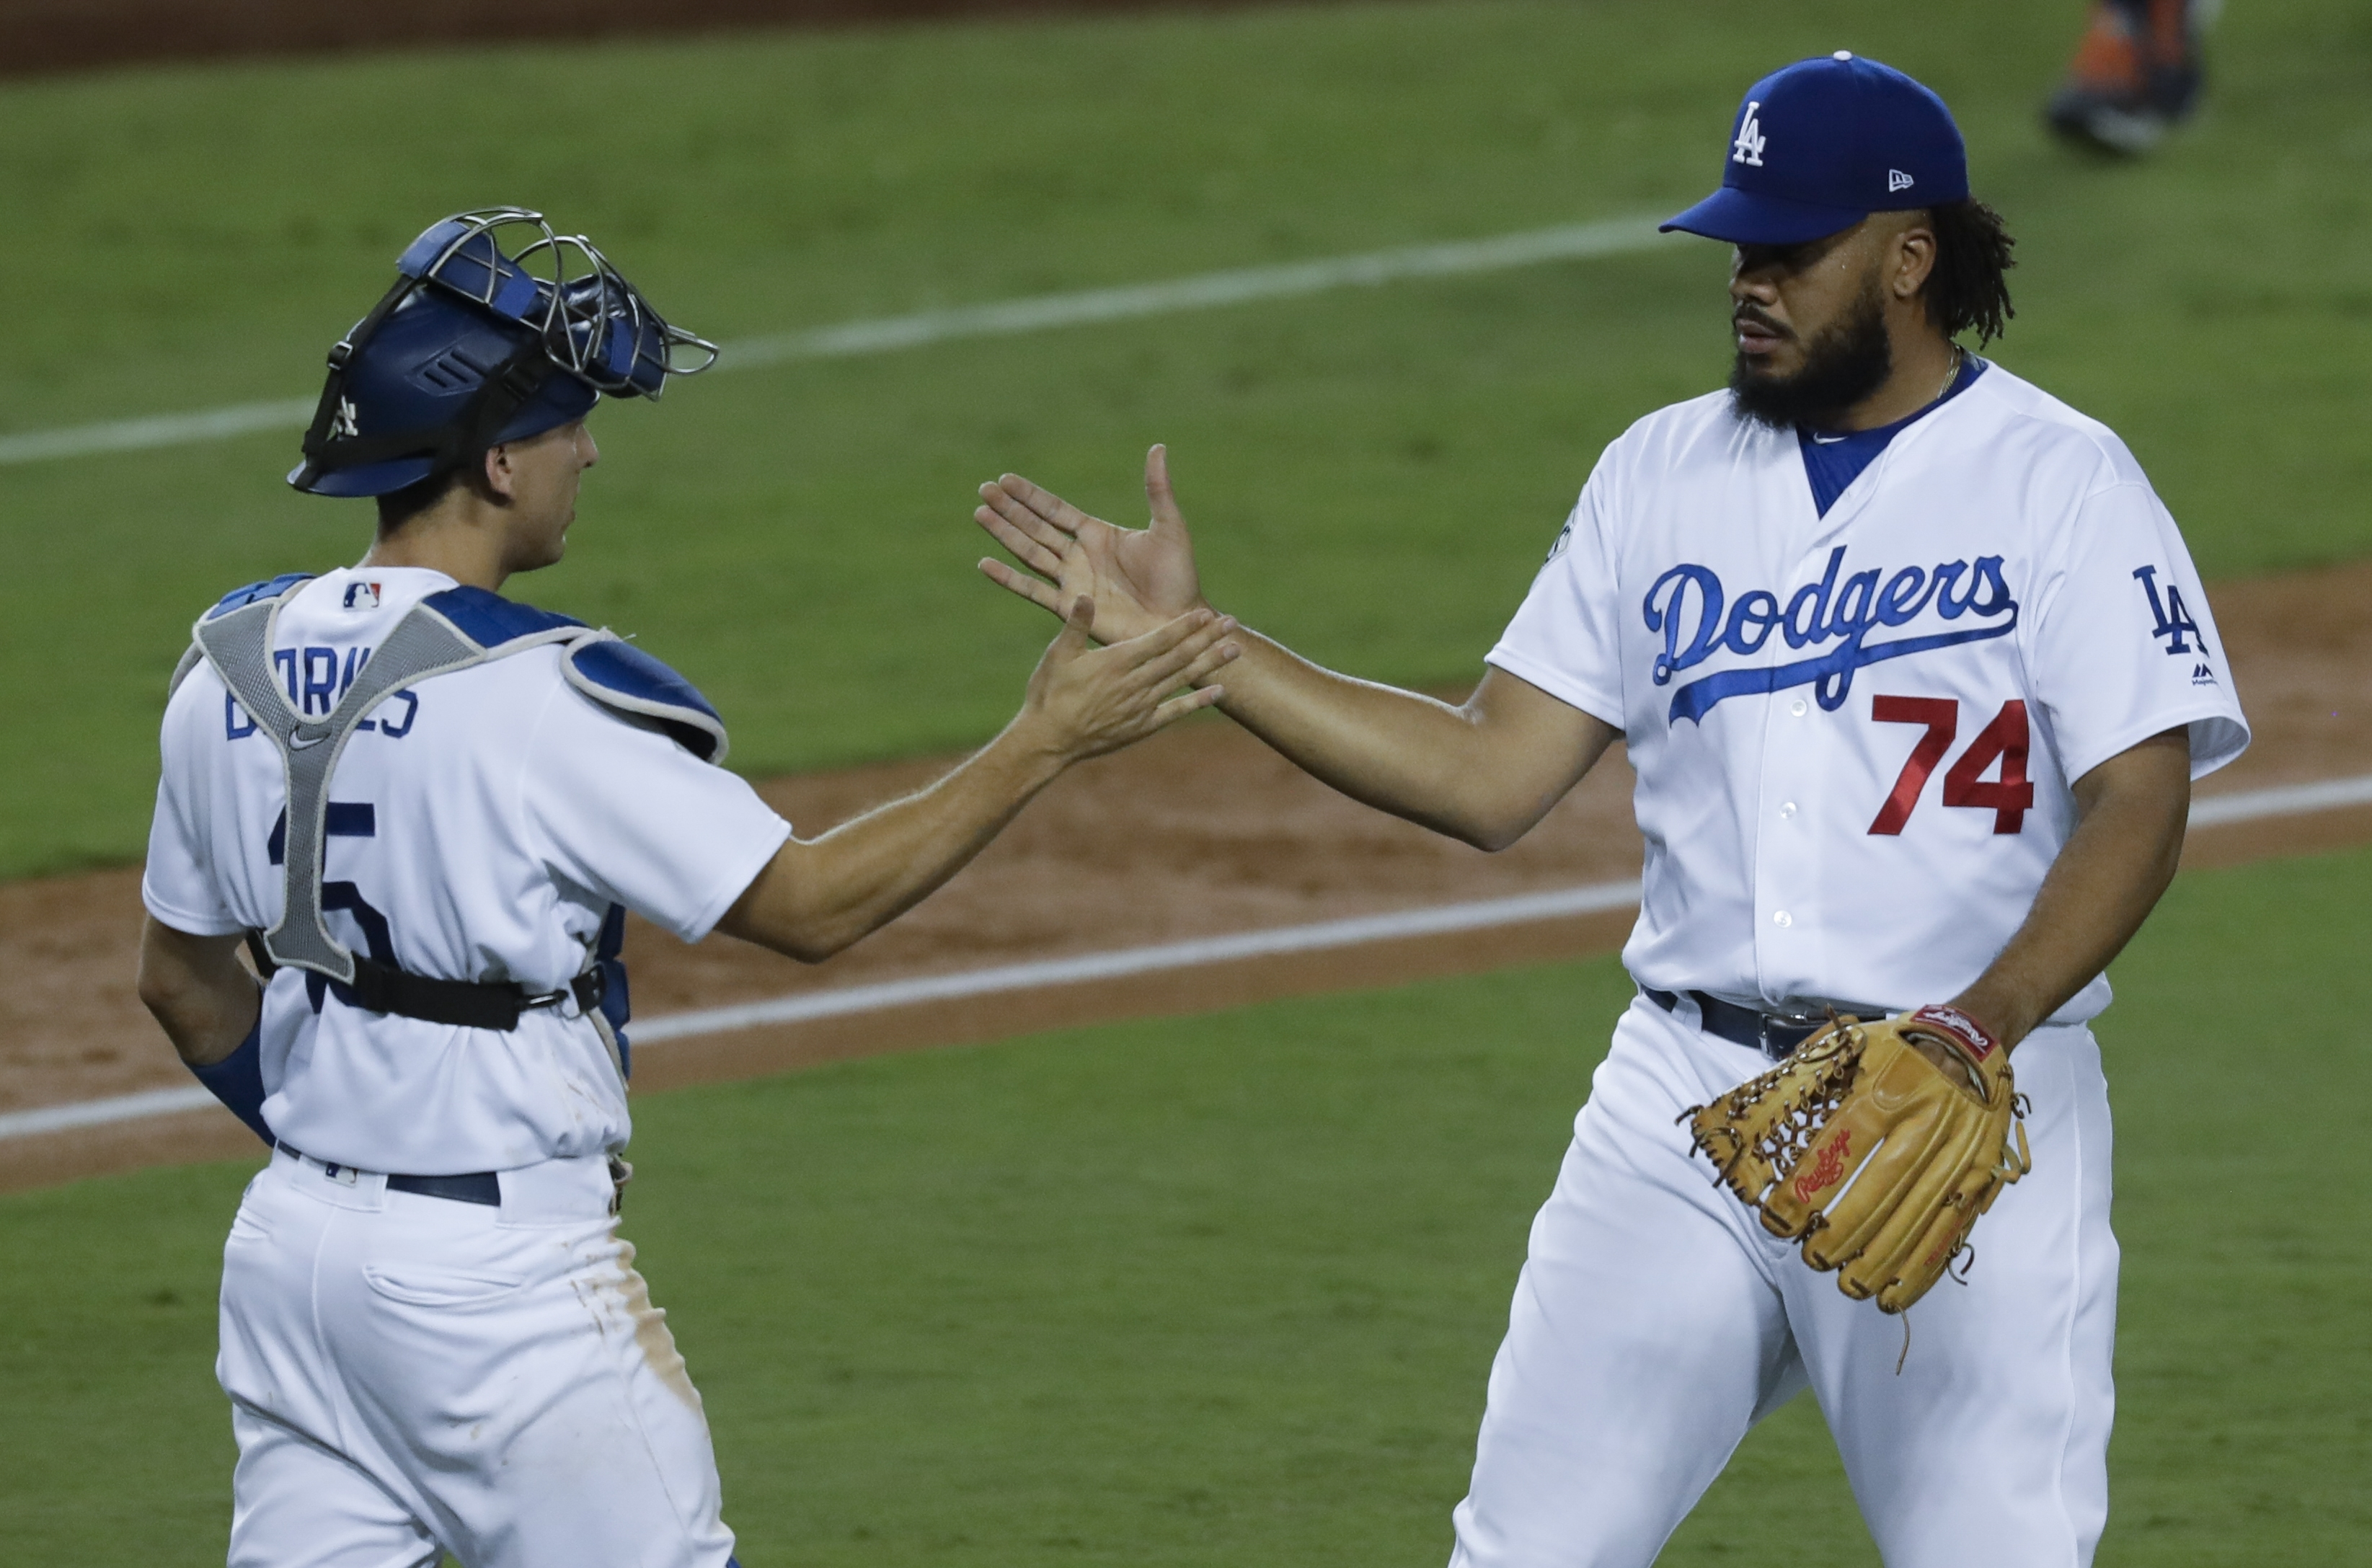 Los Angeles Dodgers' Austin Barnes and Kenley Jansen celebrate after Game 1 of baseball's World Series against the Houston Astros Tuesday, Oct. 24, 2017, in Los Angeles. The Dodgers won 3-1 to take a 1-0 lead in the series. (AP Photo/Alex Gallardo)